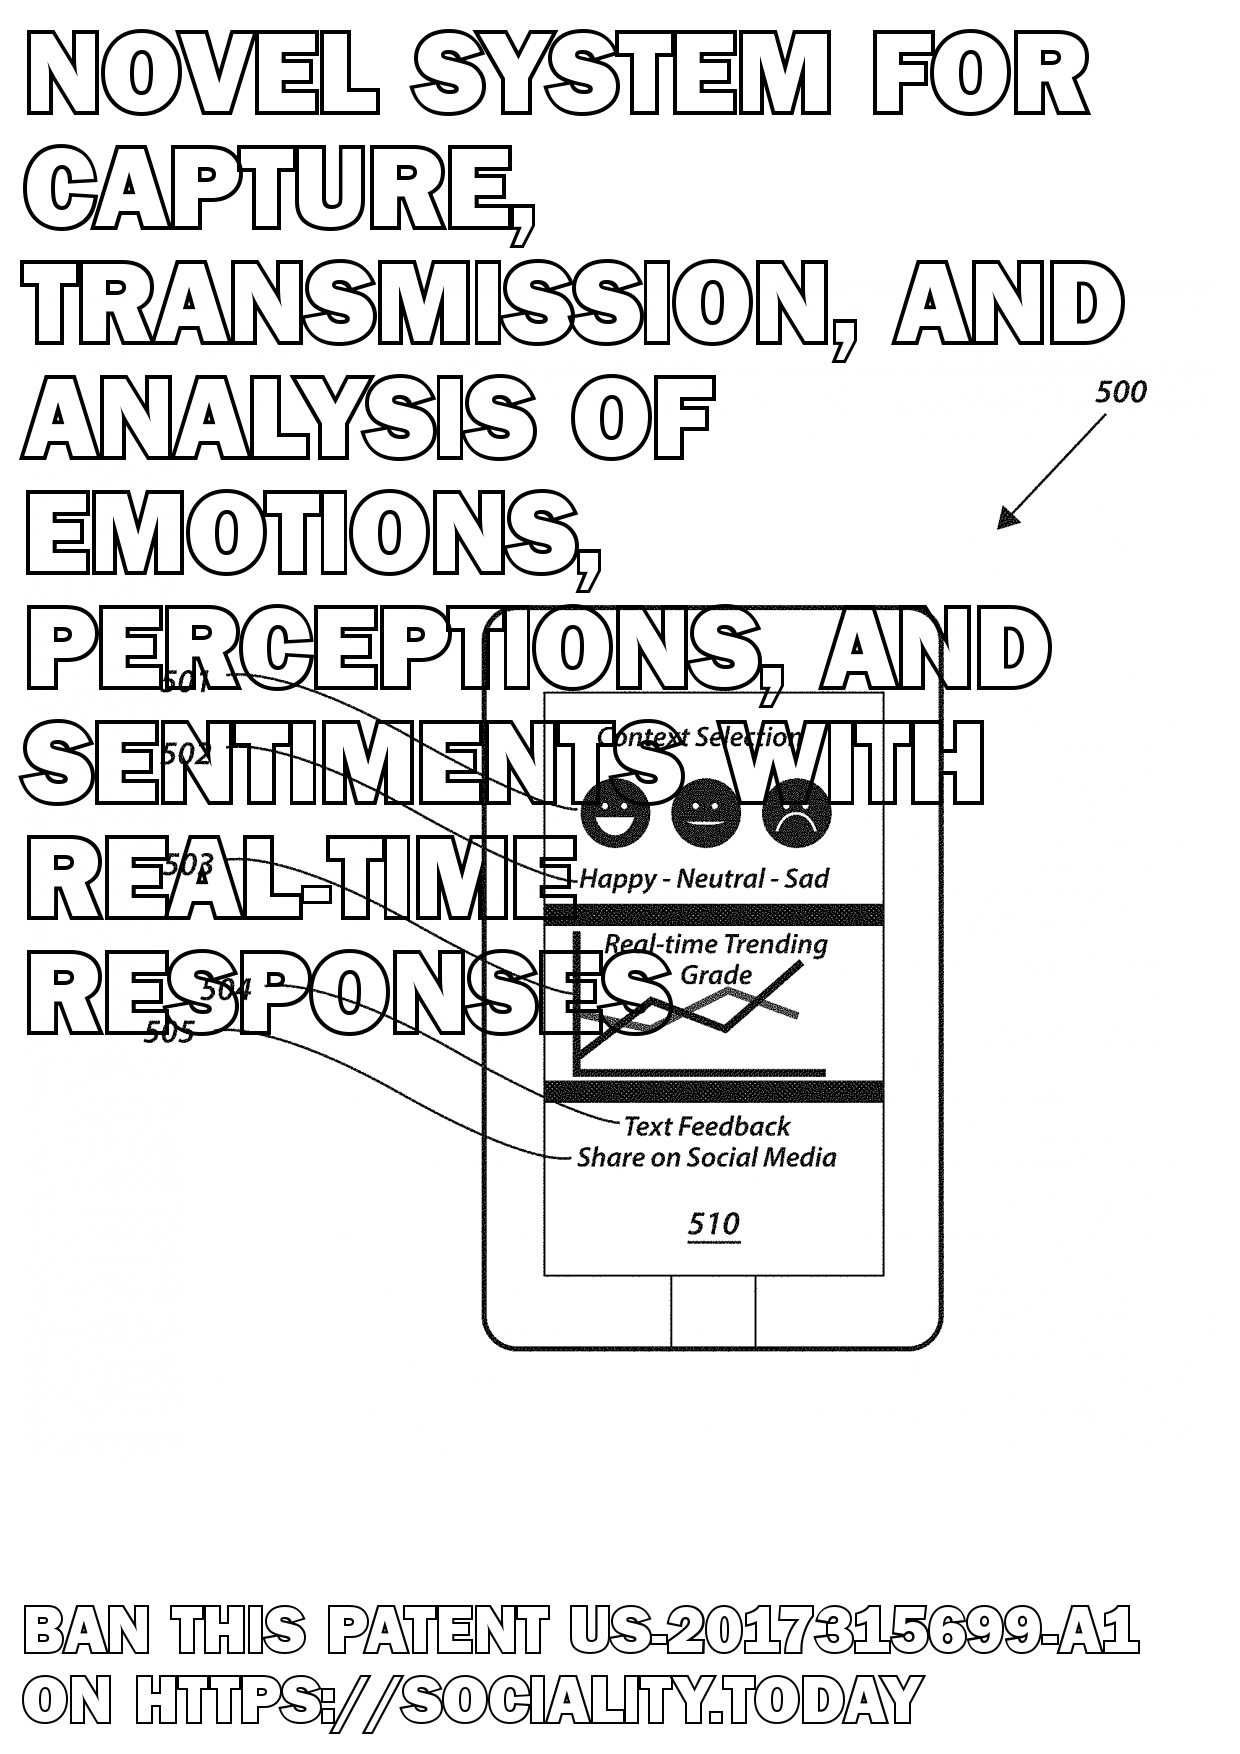 Novel system for capture, transmission, and analysis of emotions, perceptions, and sentiments with real-time responses  - US-2017315699-A1